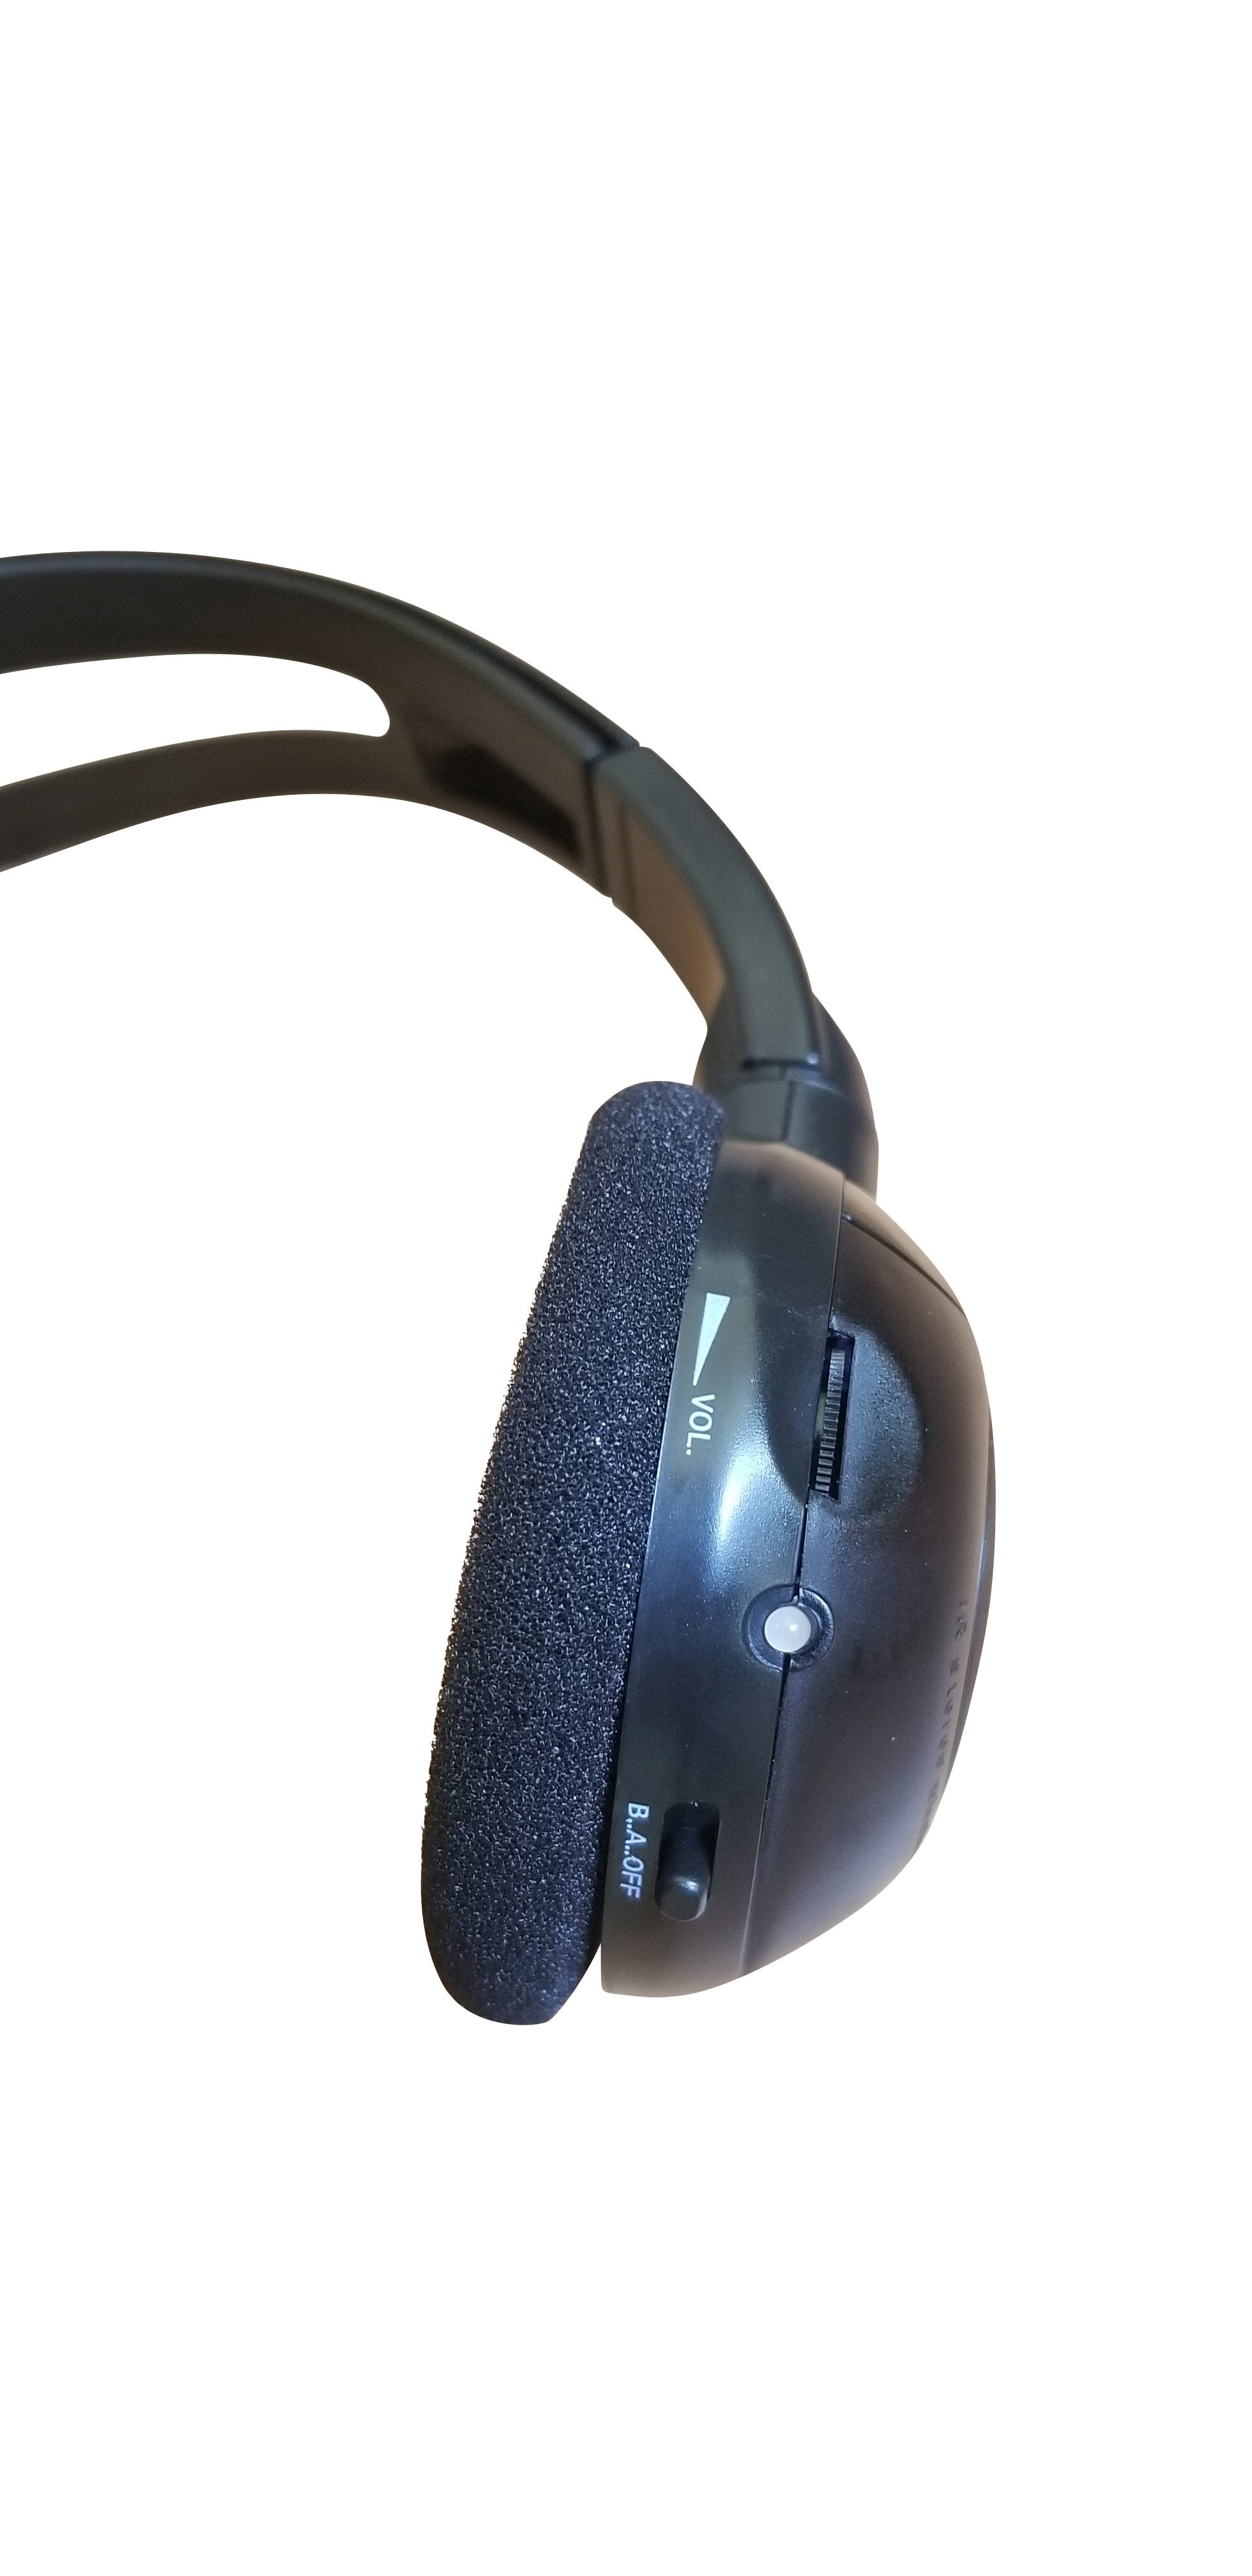 2012 VW-Volkswagen Tiguan Wireless DVD Headphone